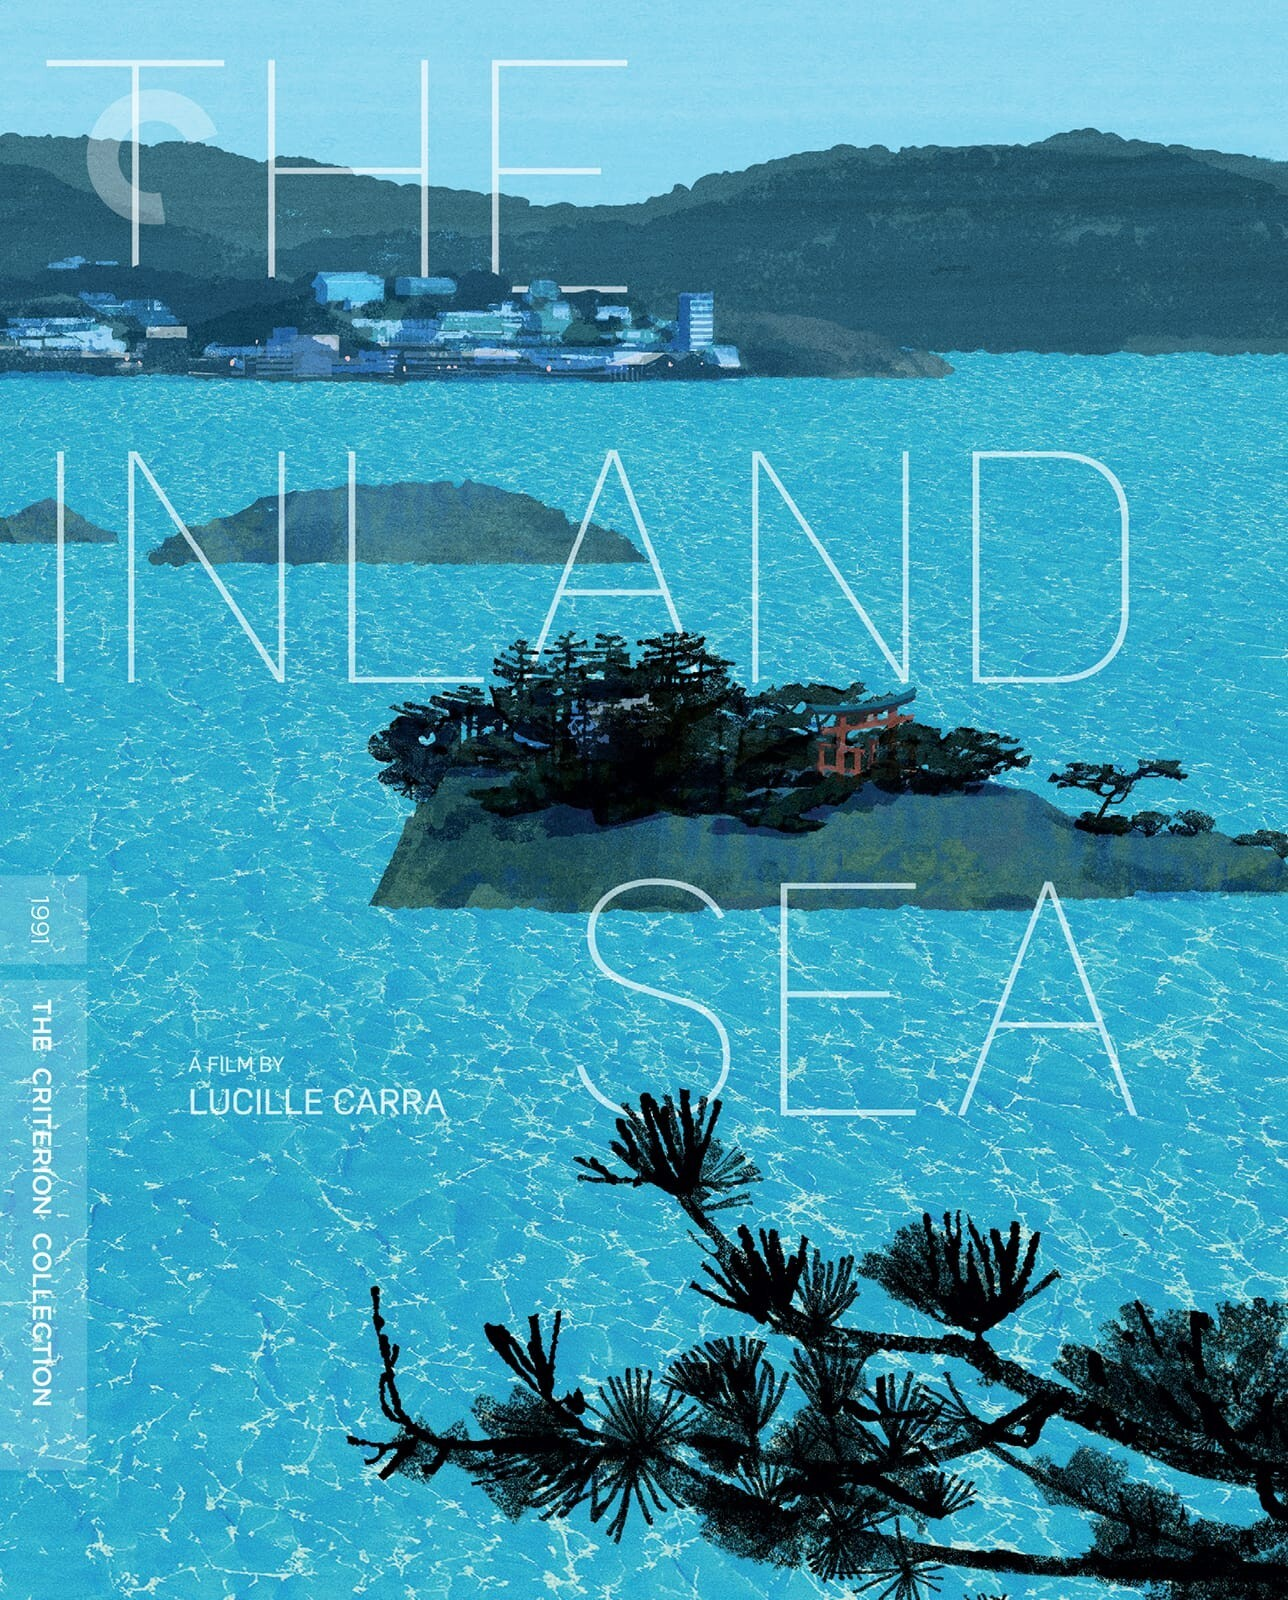 The Inland Sea (The Criterion Collection)(Blu-ray)(Region A)(Pre-order / Aug 13)